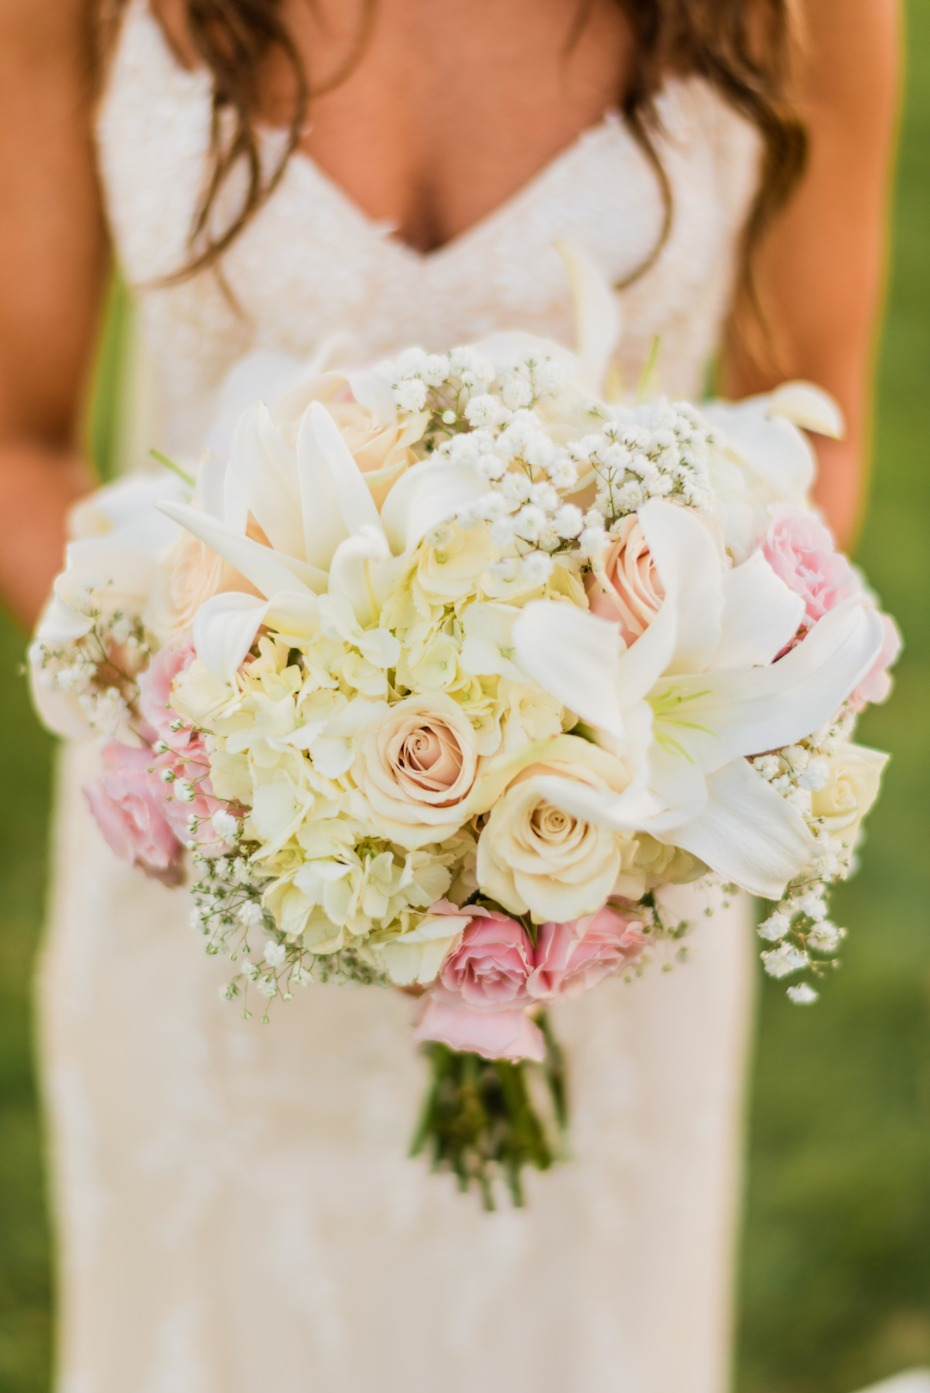 Ivory and blush wedding bouquet